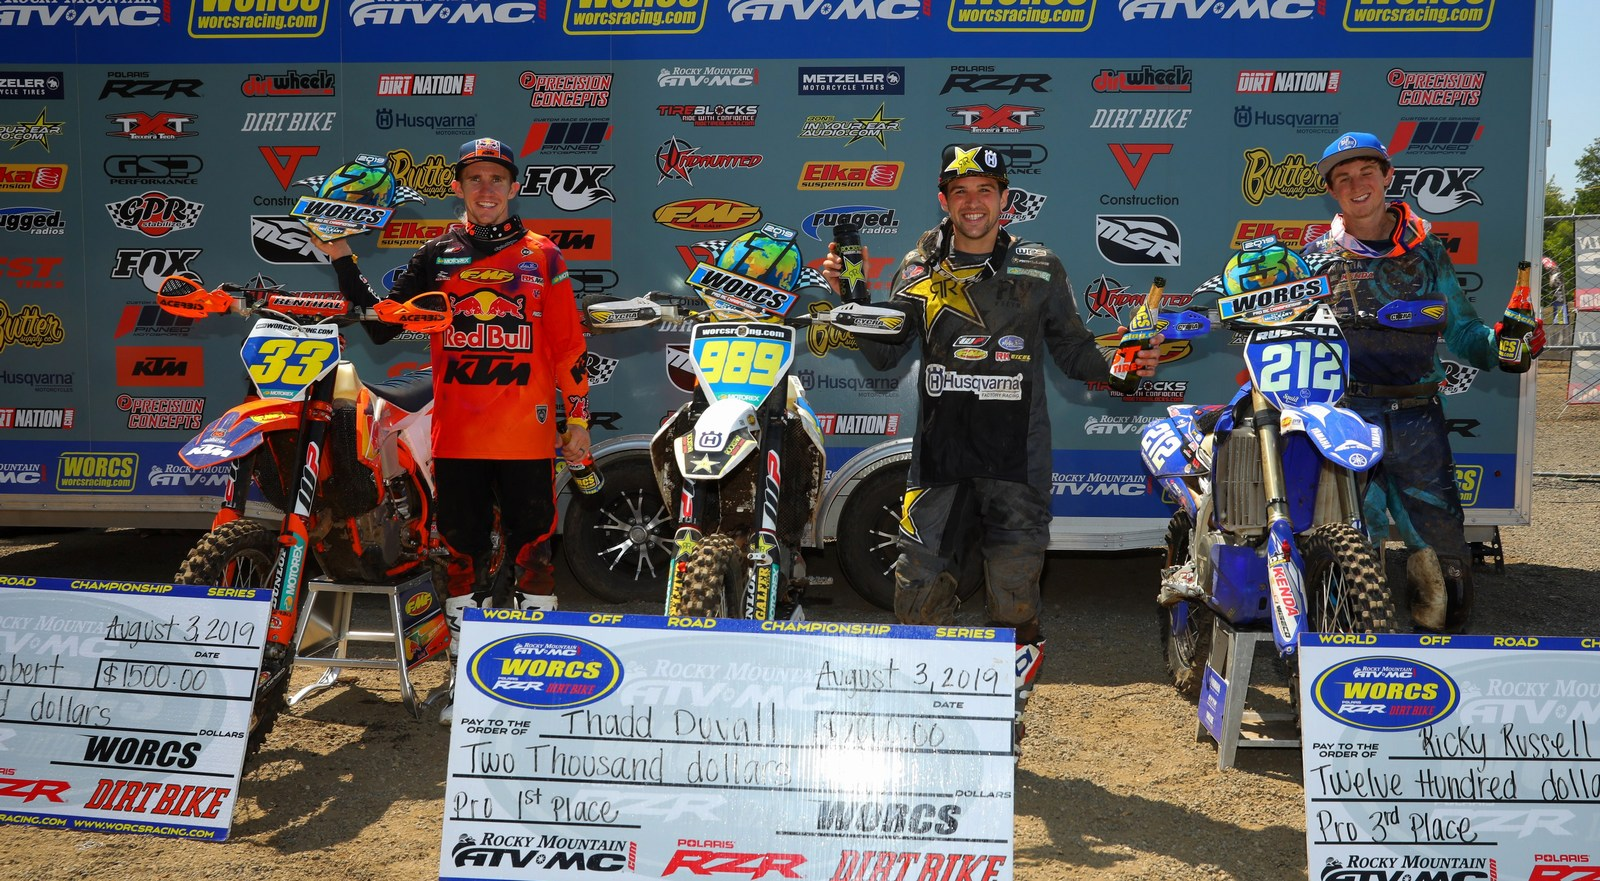 2019-08-podium-pro-bike-worcs-racing